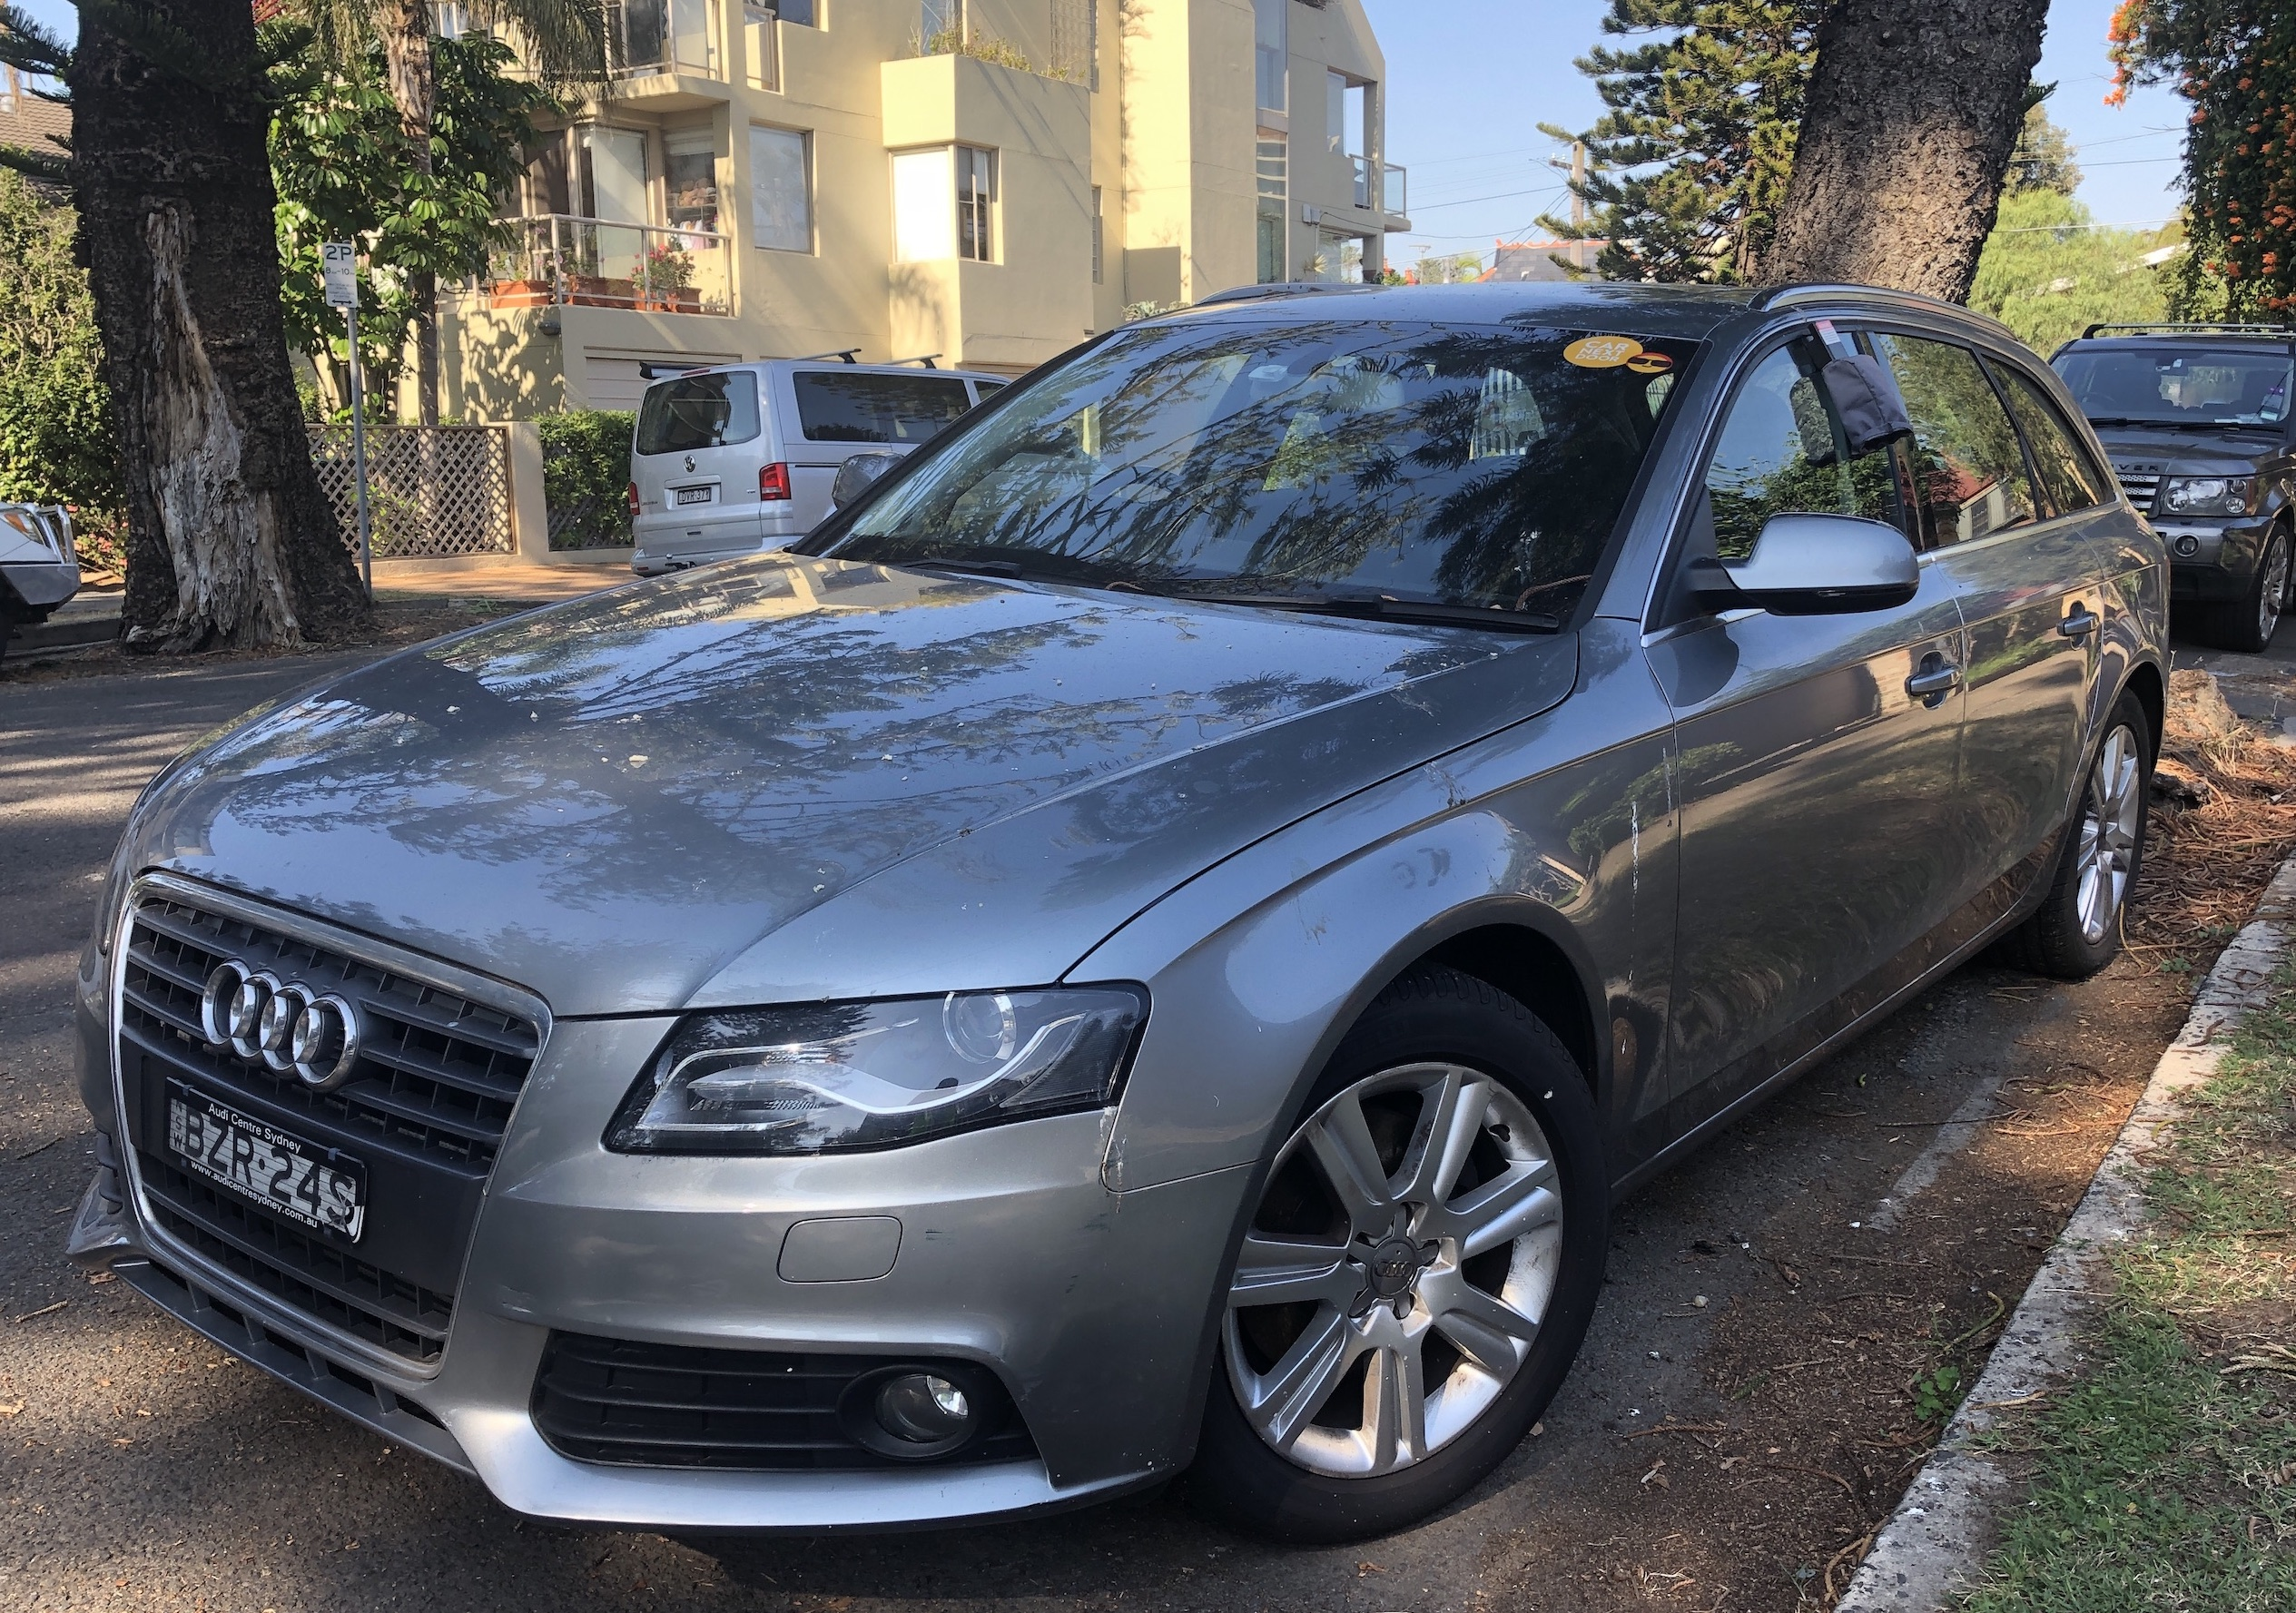 Picture of Marko's 2011 Audi A4 Avant